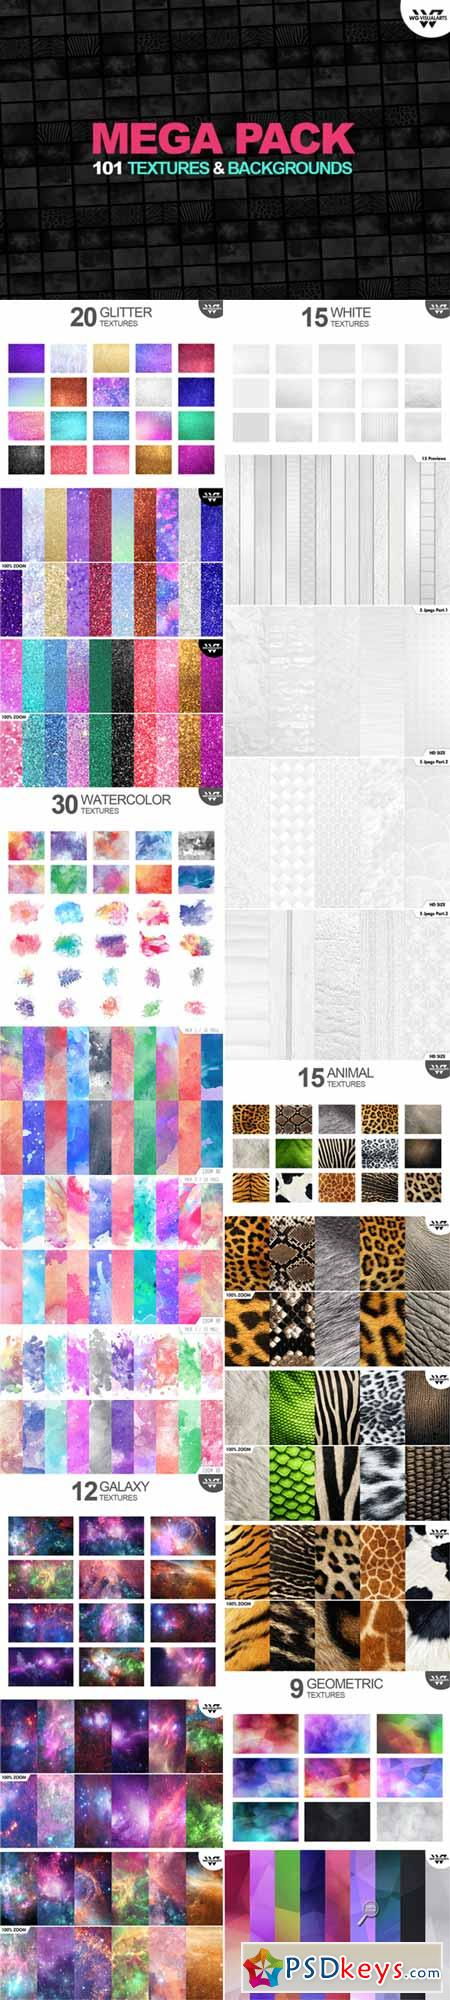 101 MEGA PACK Textures & Backgrounds 476458